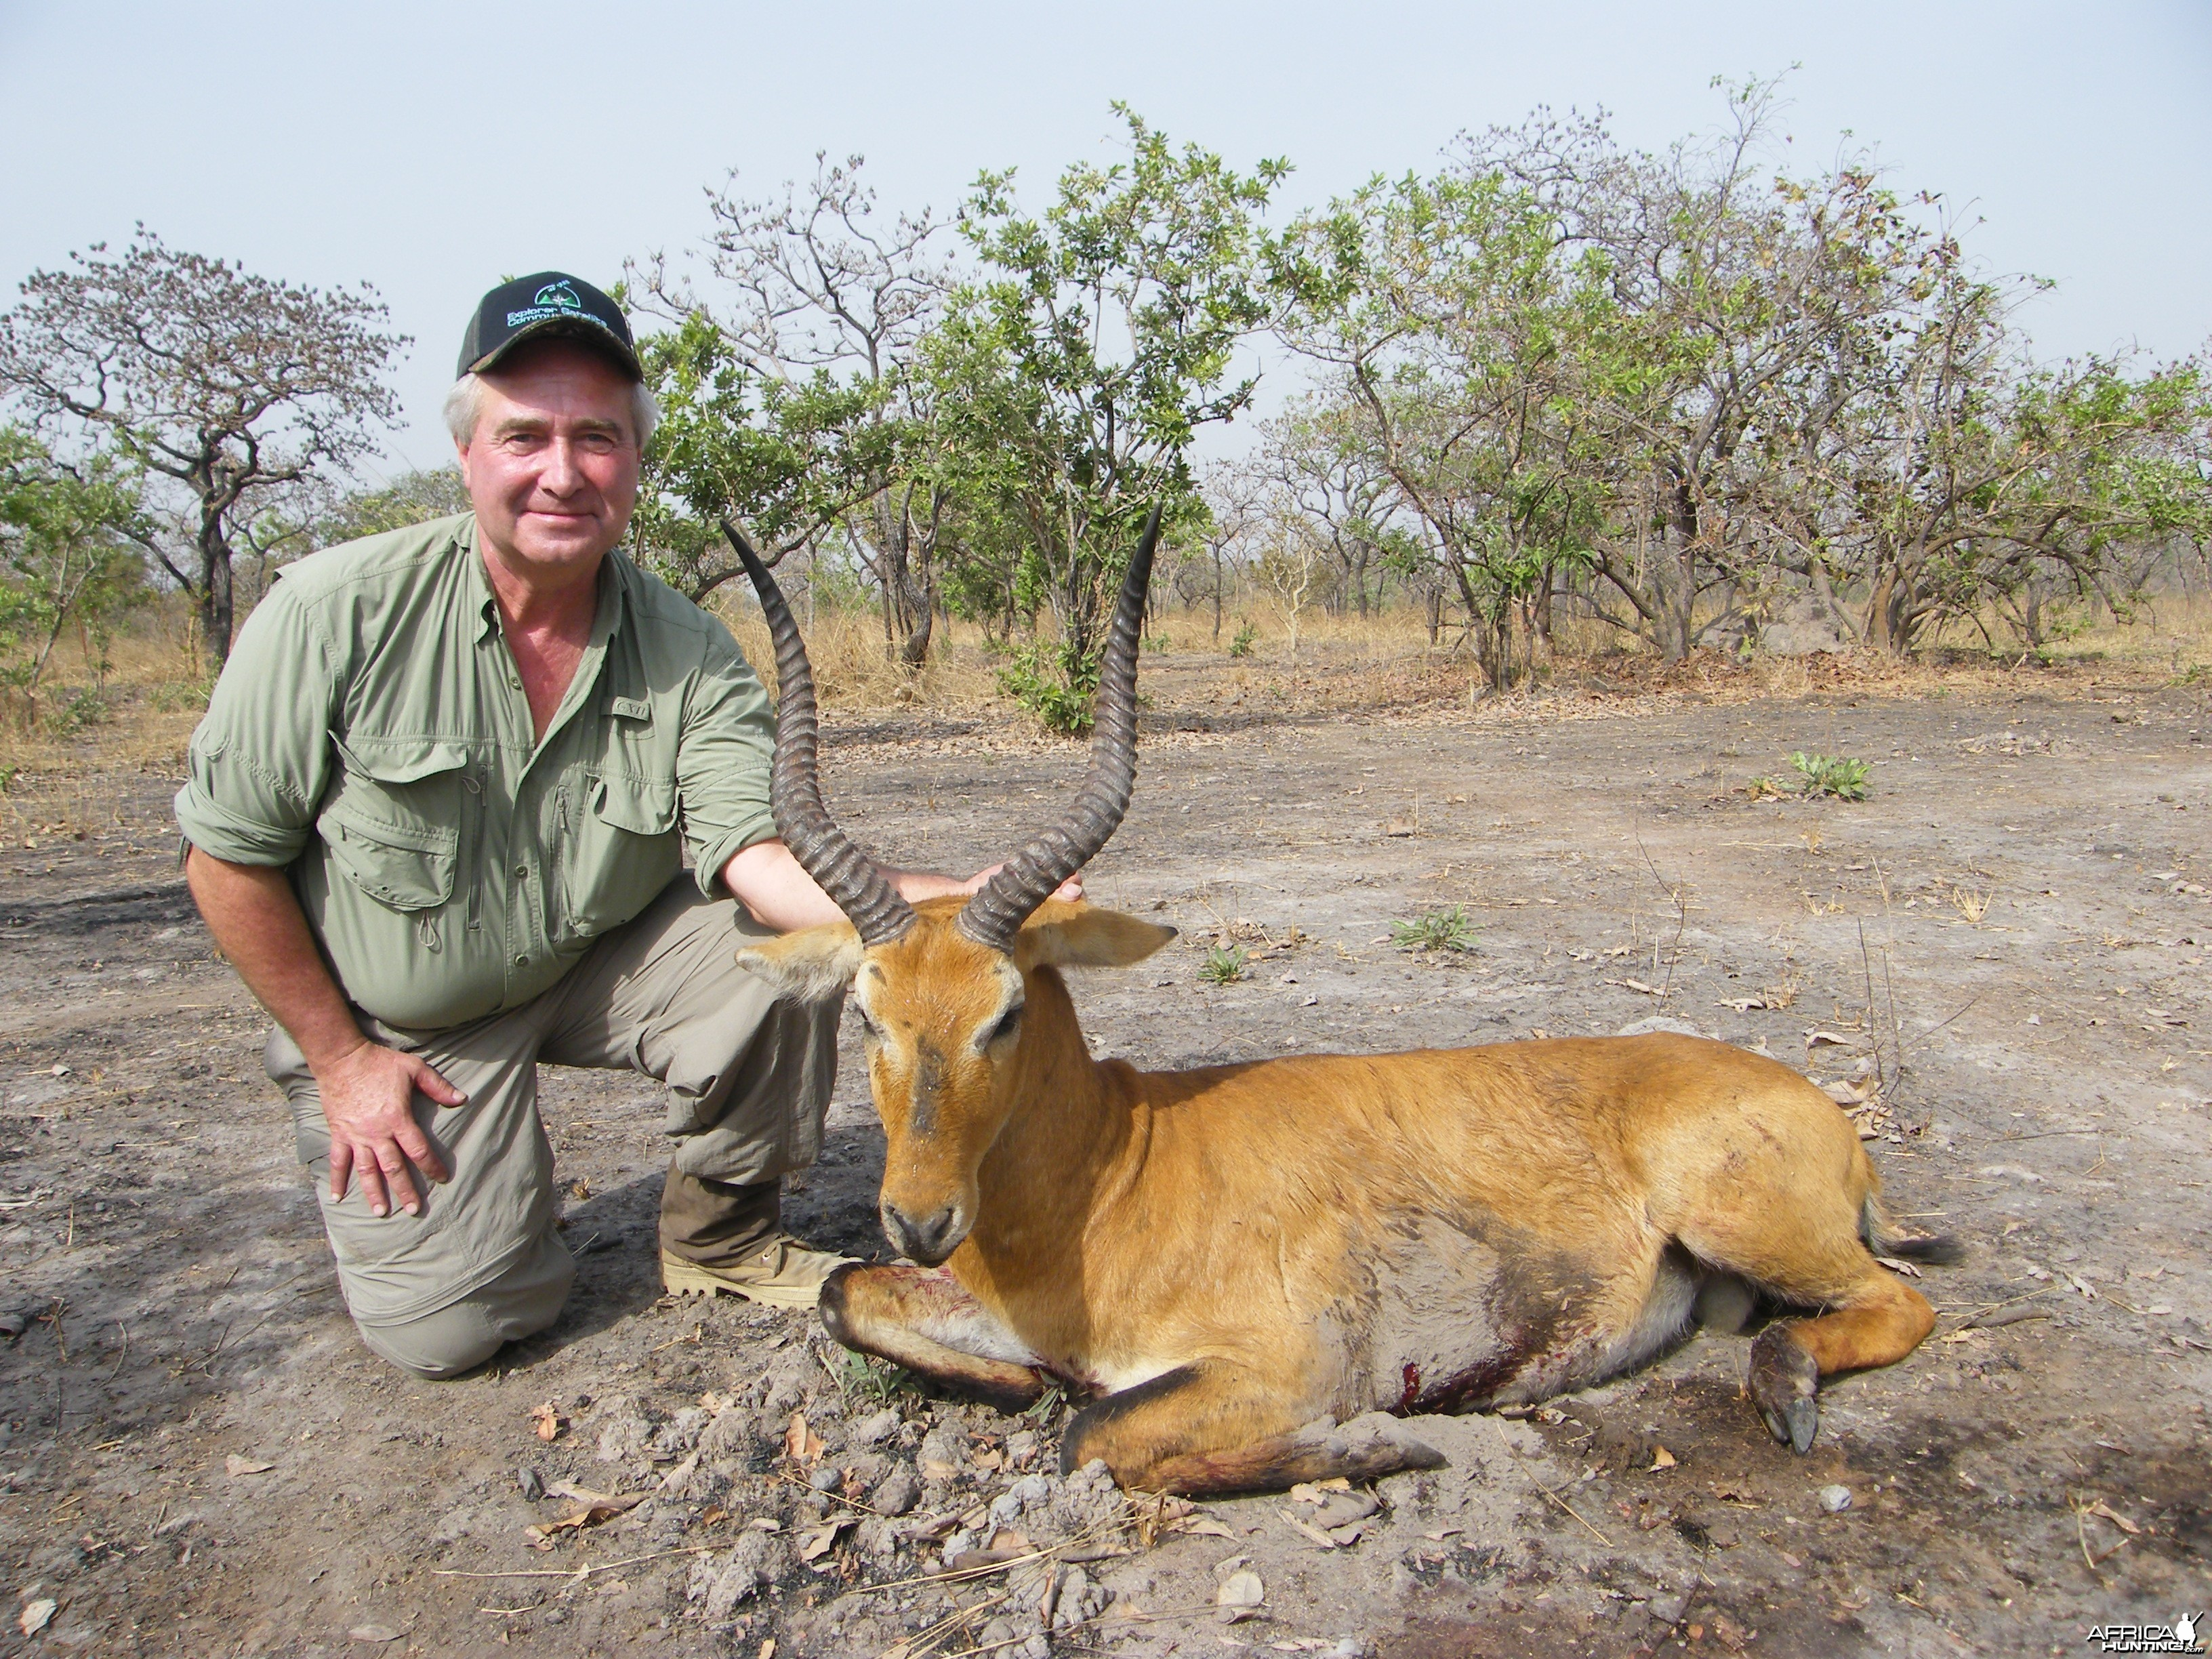 Western/Buffon Kob hunted in Cameroon with Club Faune